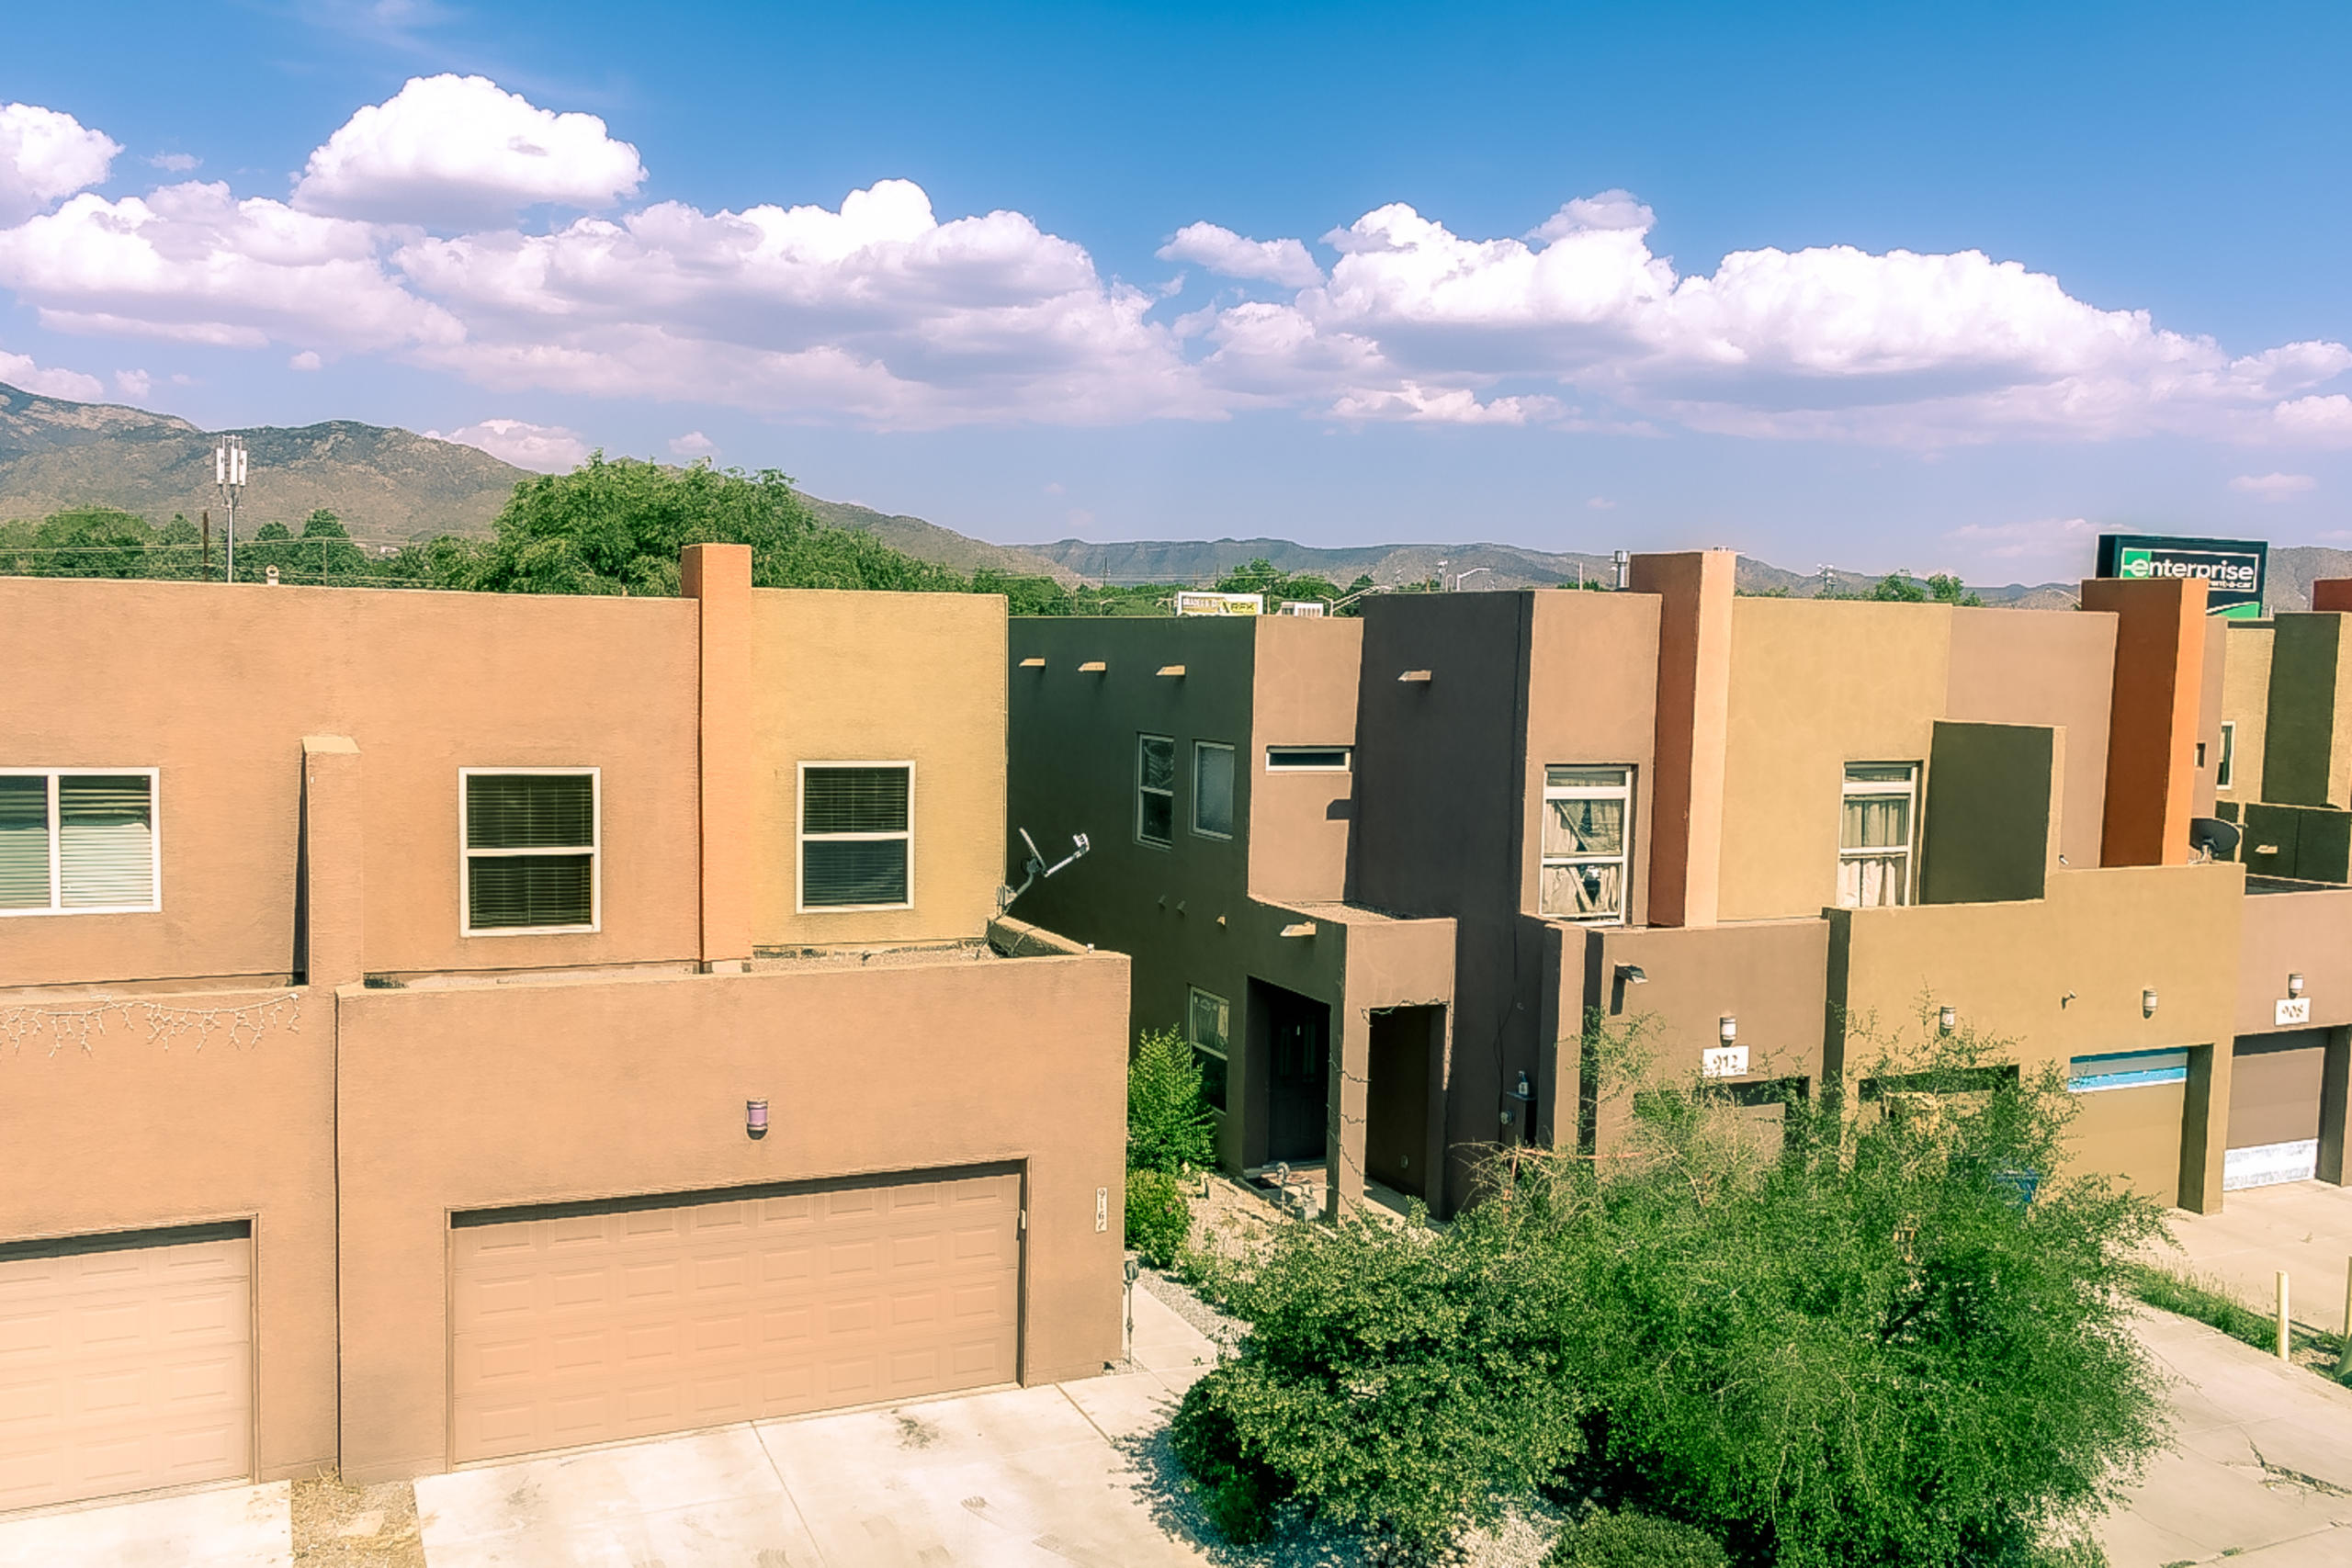 Former Parade of Homes winner! This semi custom Townhouse is centrally located near Uptown Albuquerque.  Mountain Views. Tons of natural light.  High Efficient heating & refrigerated AC, tankless water heater.  3 bedrooms + office/study. 2 full bathrooms & 1 half bathroom. Open floorplan. 18' ceilings in the living area. New paint & Carpet. All tile floors downstairs except carpet in office. Custom Kiva fireplace w/ stone accents.  Kitchen features knotty alder raised panel cabinets w/crown molding, custom tile backsplash, stainless steel appliances, spacious pantry & breakfast bar. Large owners suite features mountain views, walk-in closet, dbl sinks, garden tub & separate shower w/ oil rub bronze fixtures & trim.  Custom wrought iron & wood stair railings. Covered east facing rear Patio.